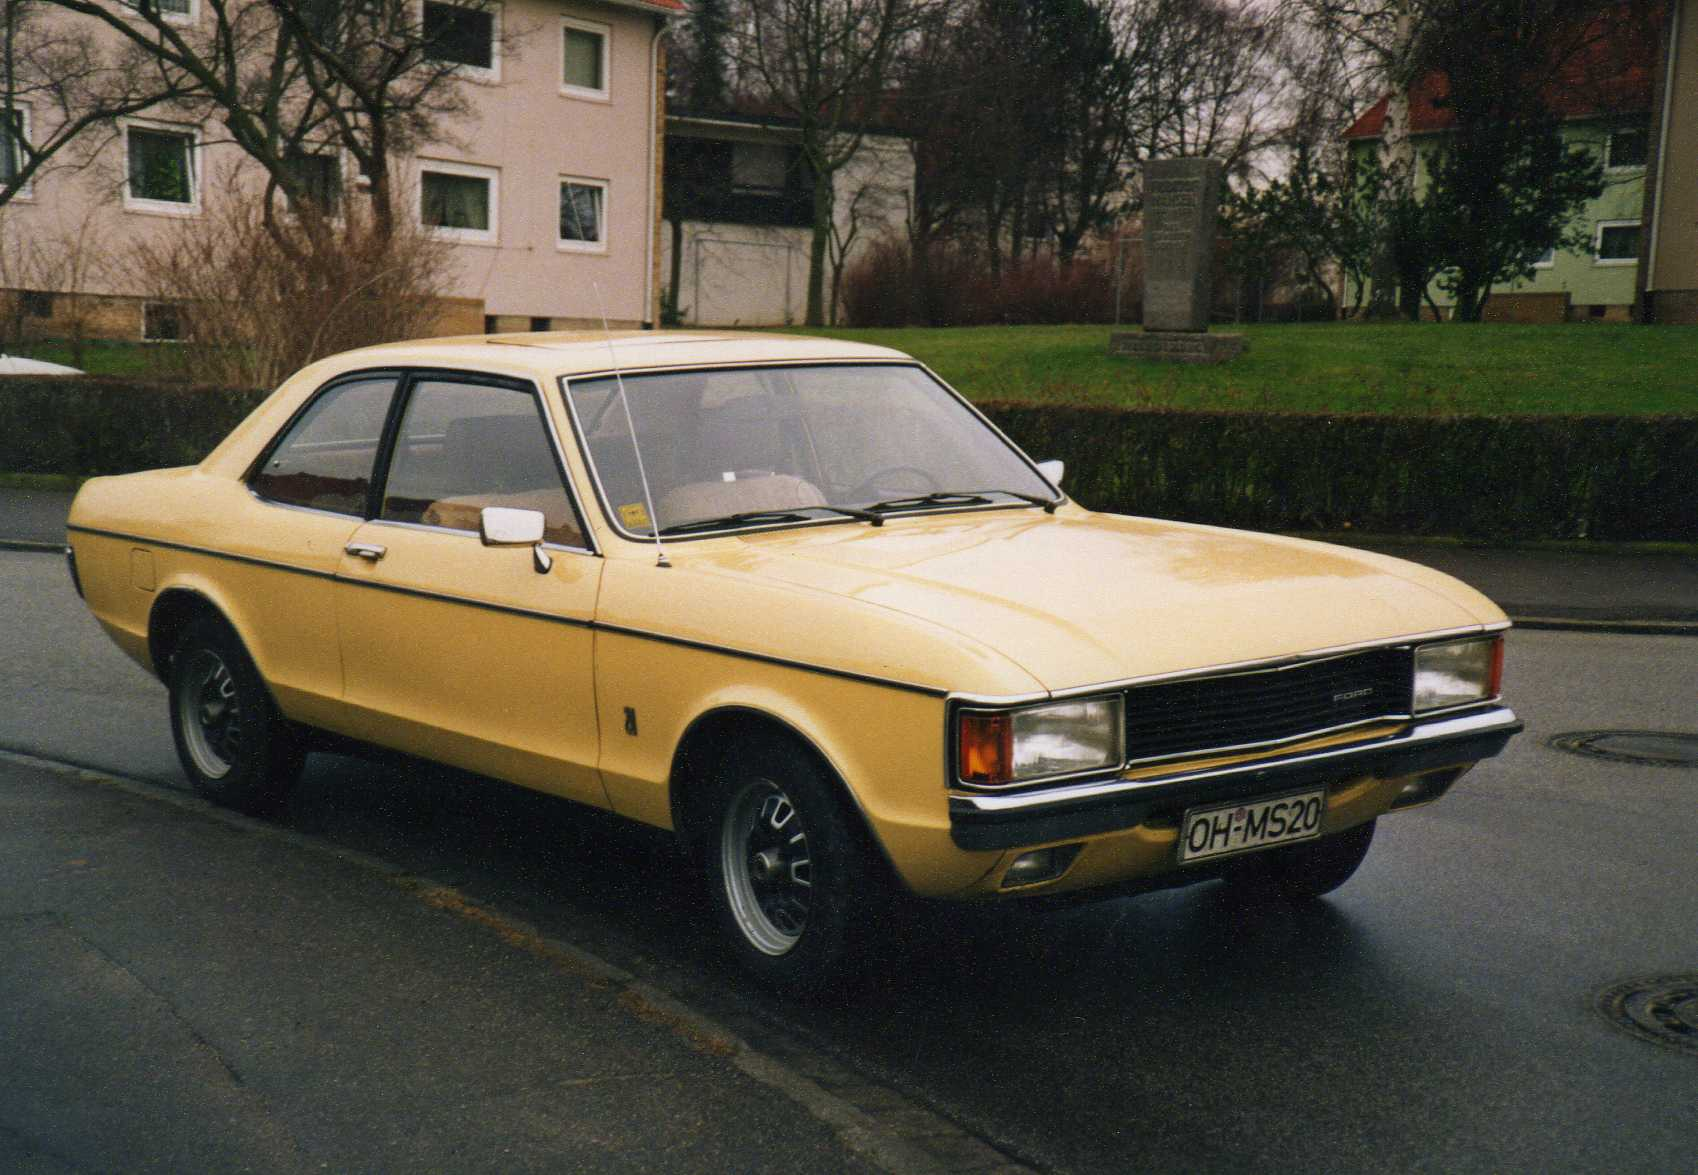 Ford Granada technical details, history, photos on Better Parts LTD